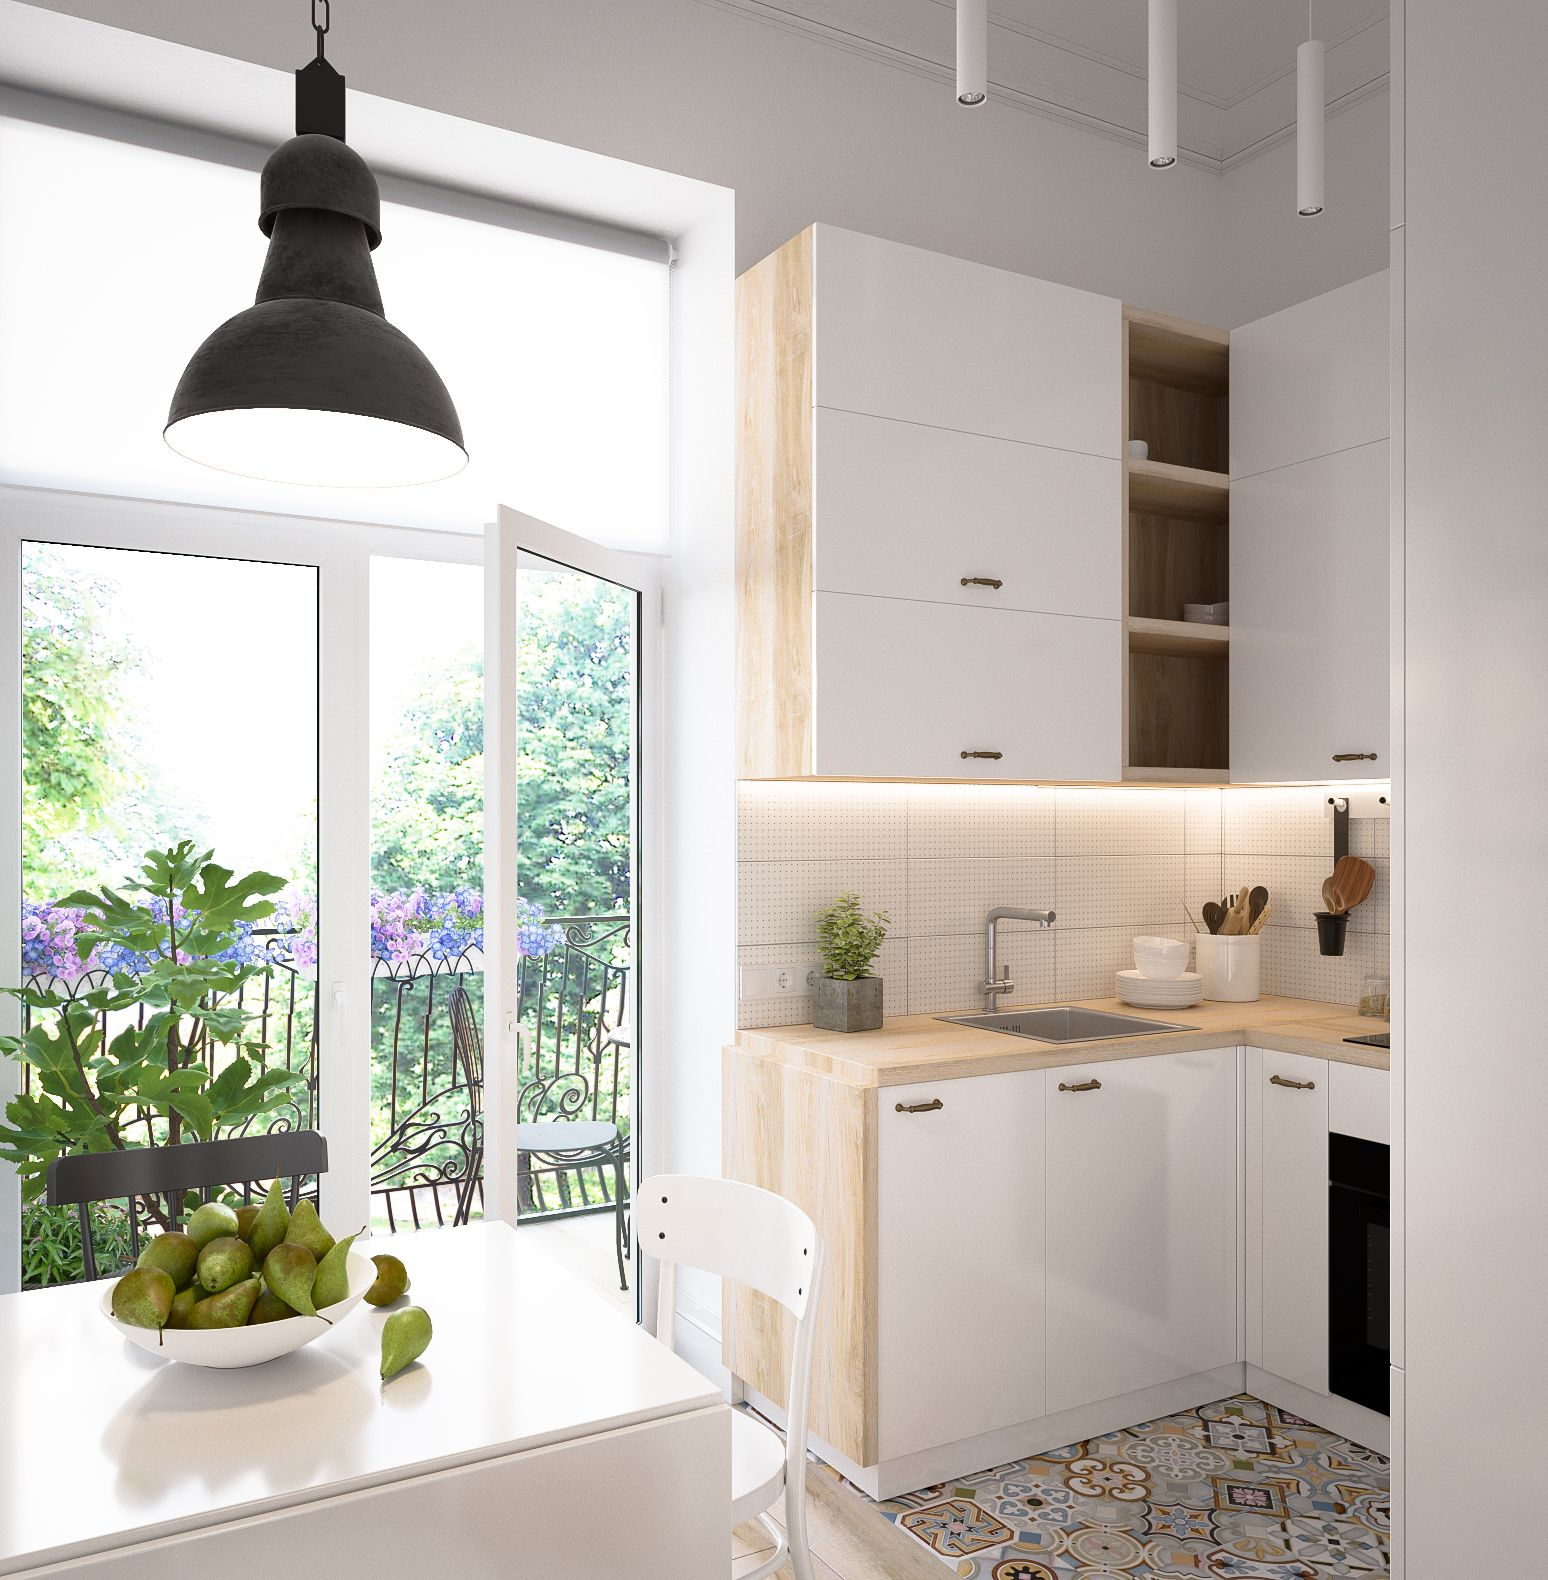 Modern Scandinavian Style Home Design For Young Families 2 Examples House Styling Interior Scandinavian Style Home Kitchen Design